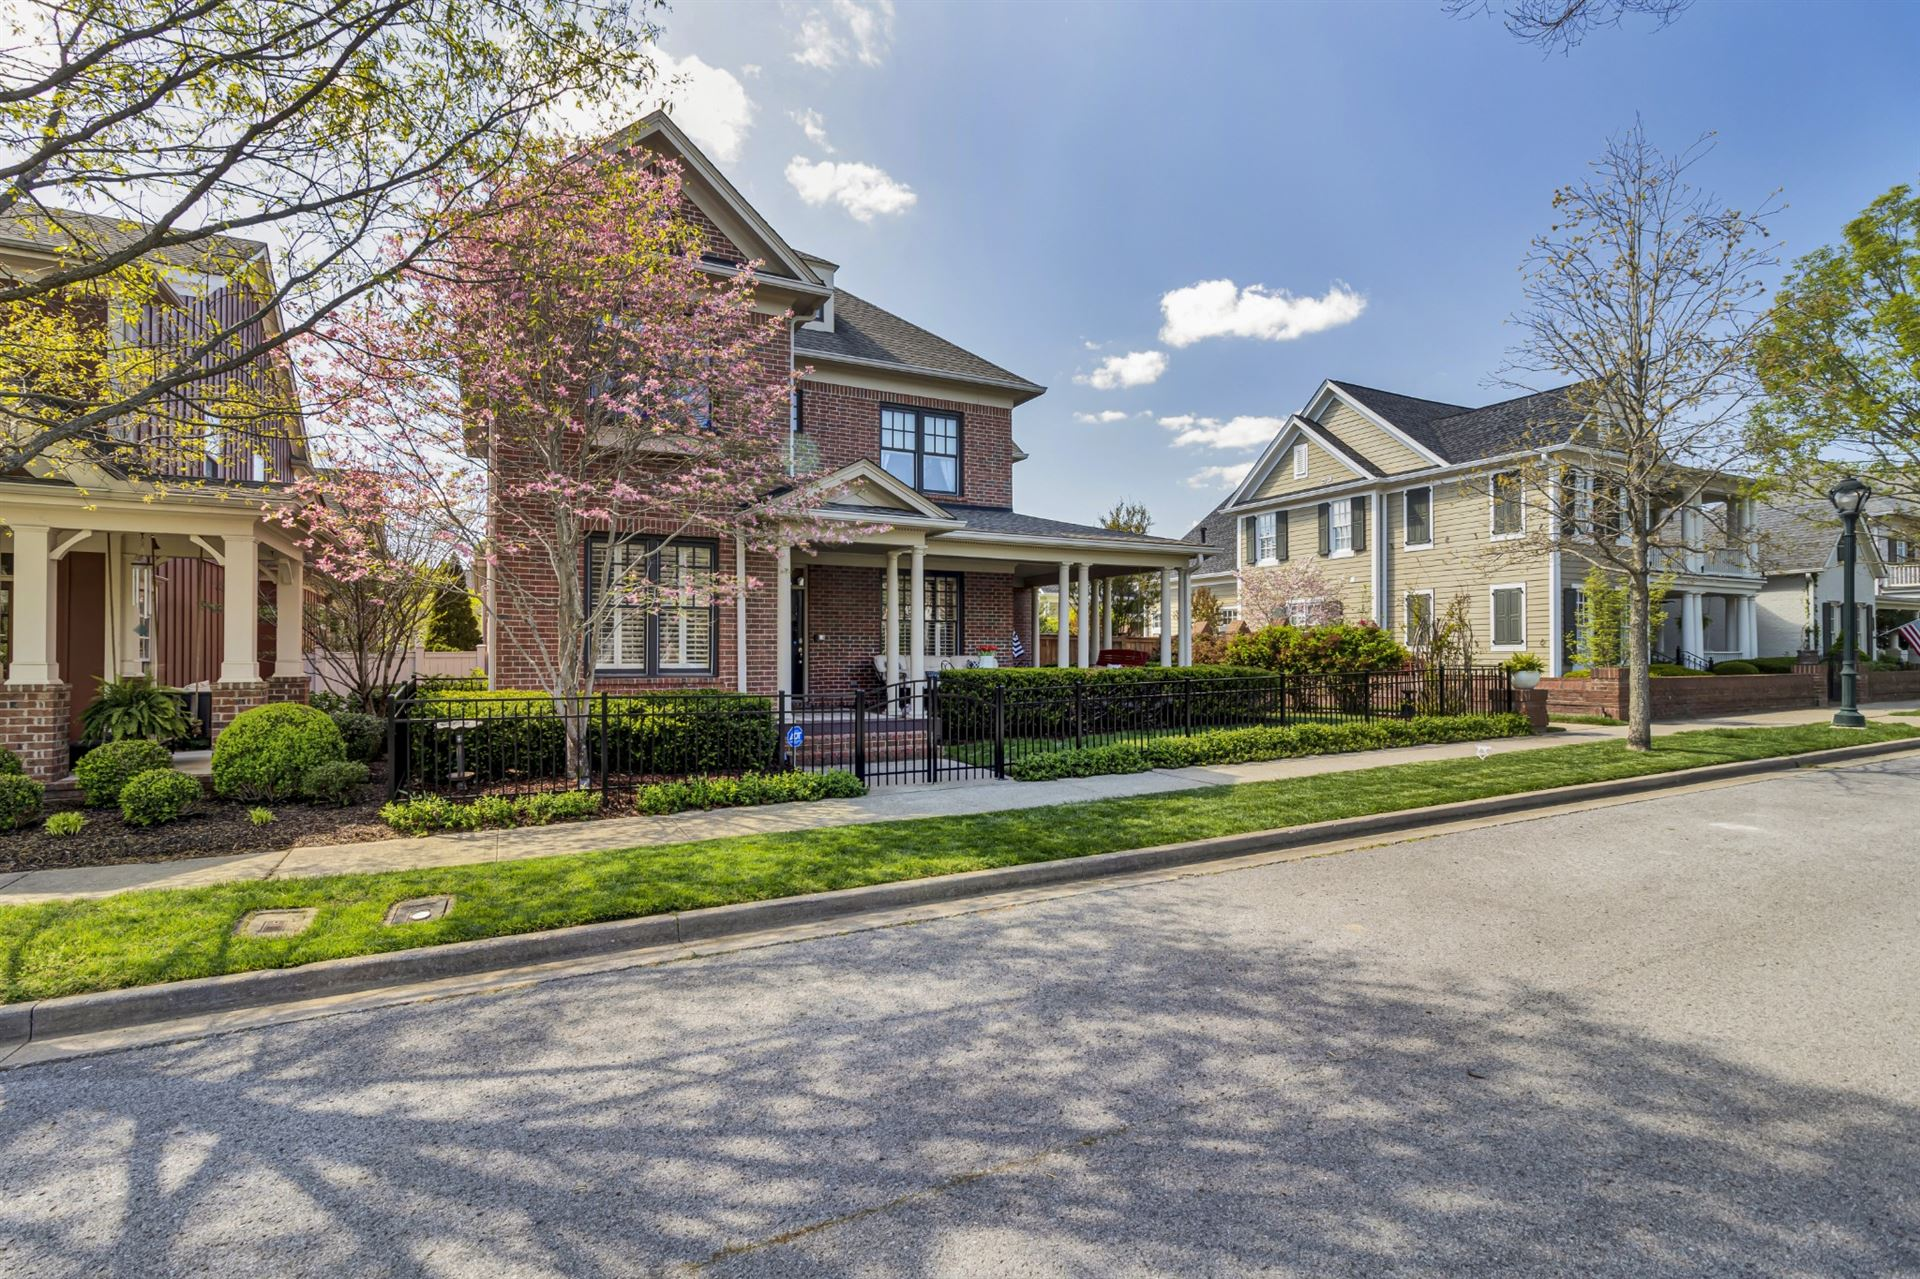 Photo of 533 Ardmore Pl, Franklin, TN 37064 (MLS # 2243778)